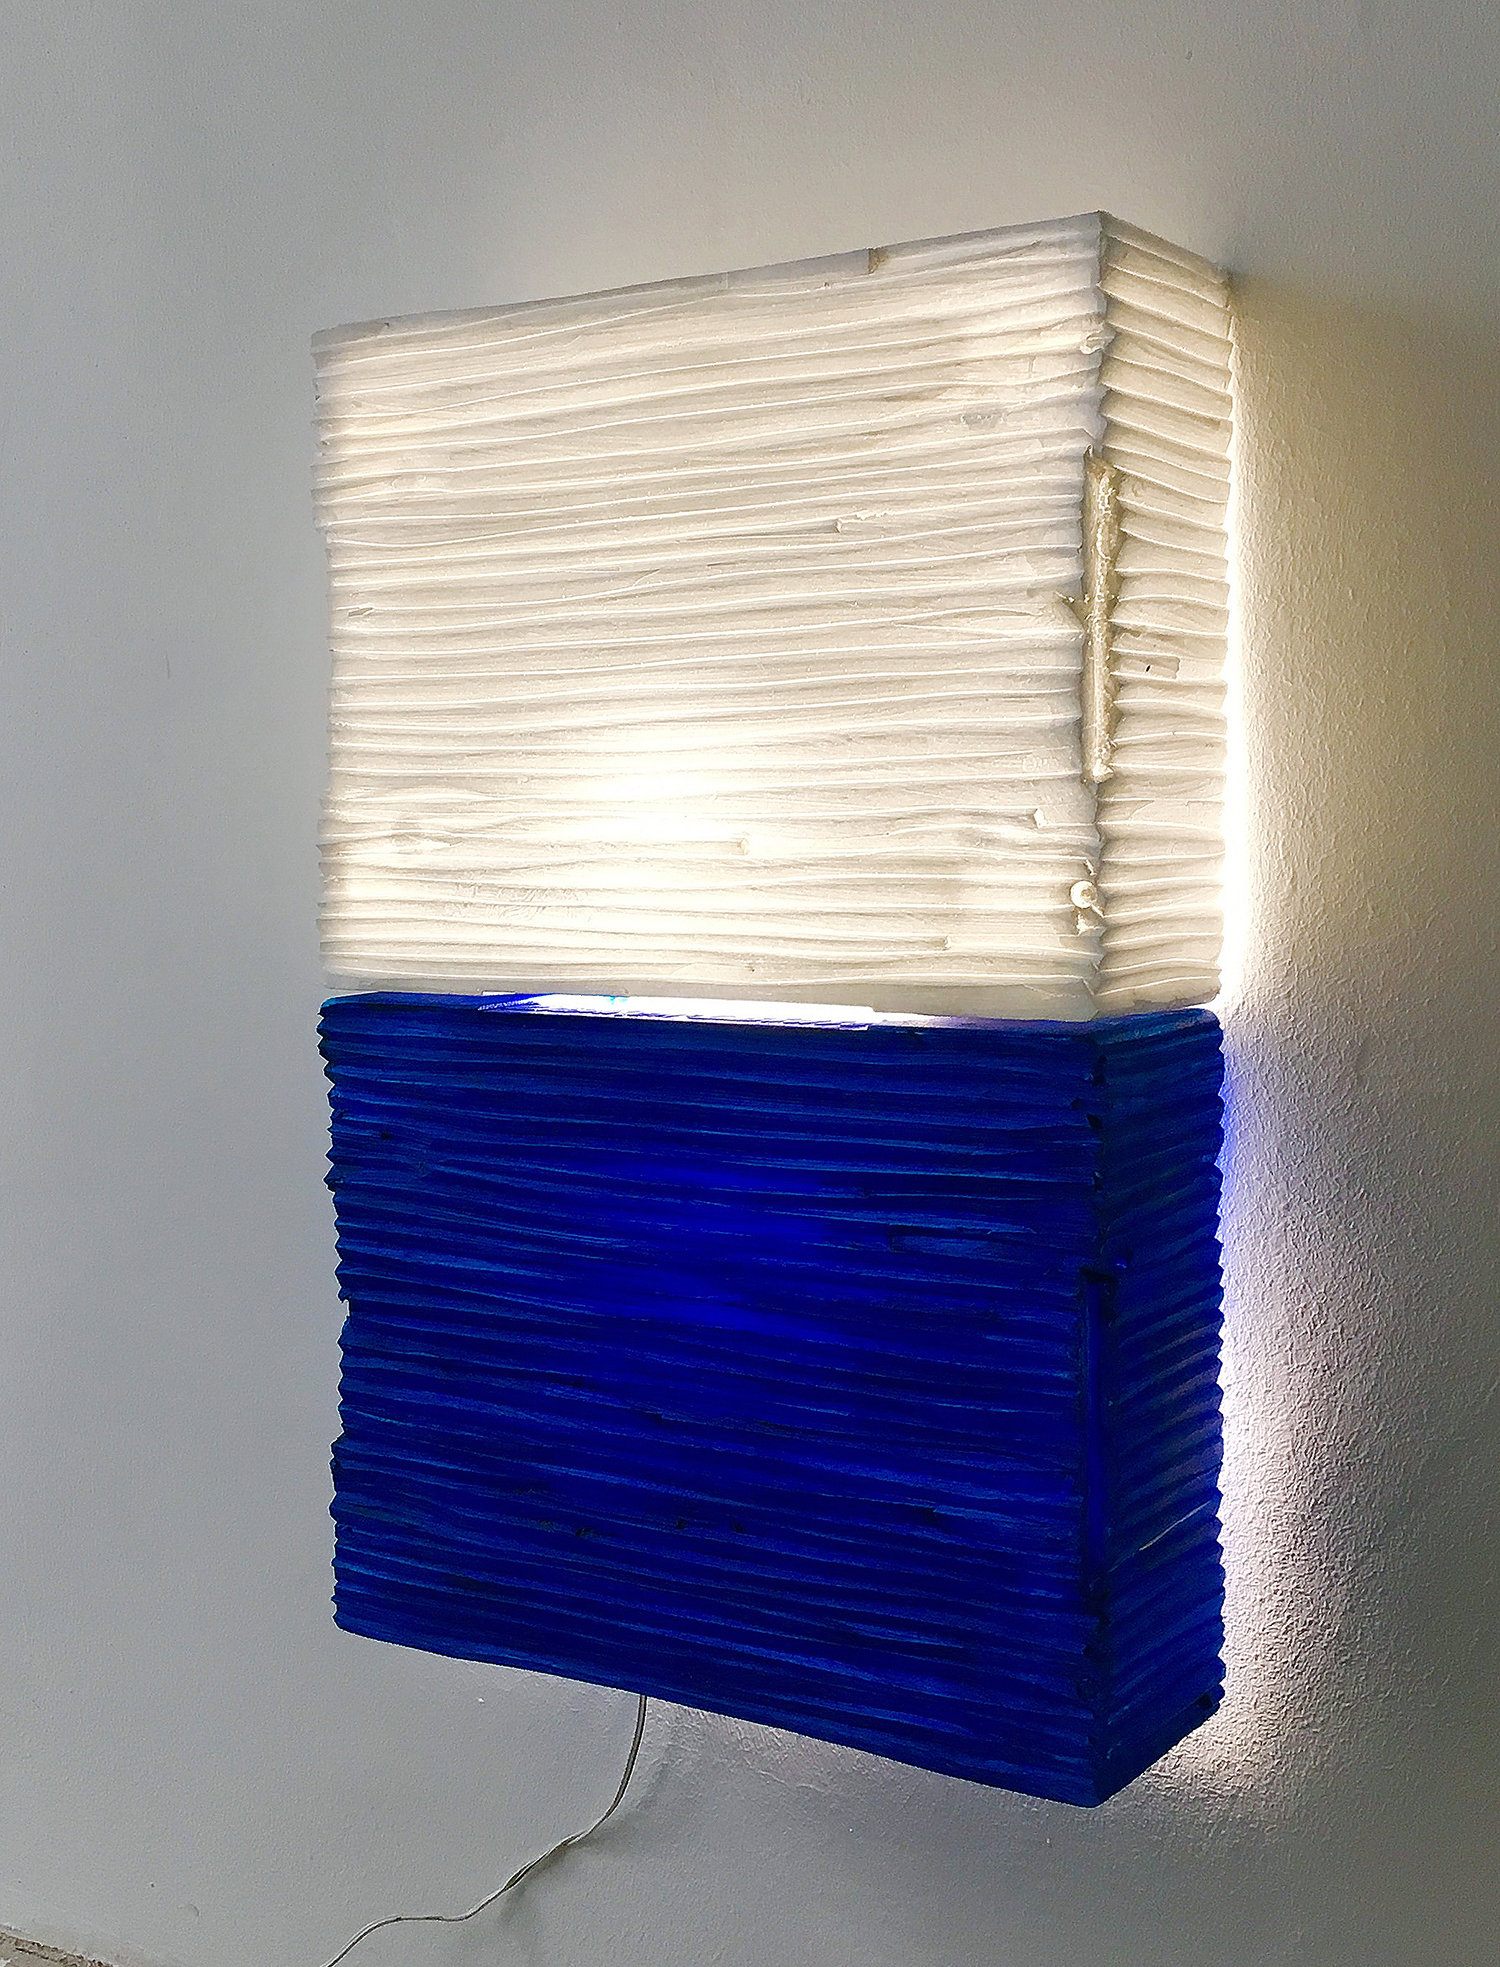 web222-wall-panel-lamp-fixture-experiment-blue-white-Gisela-Stiegler-MarionFriedmannGallery.jpg